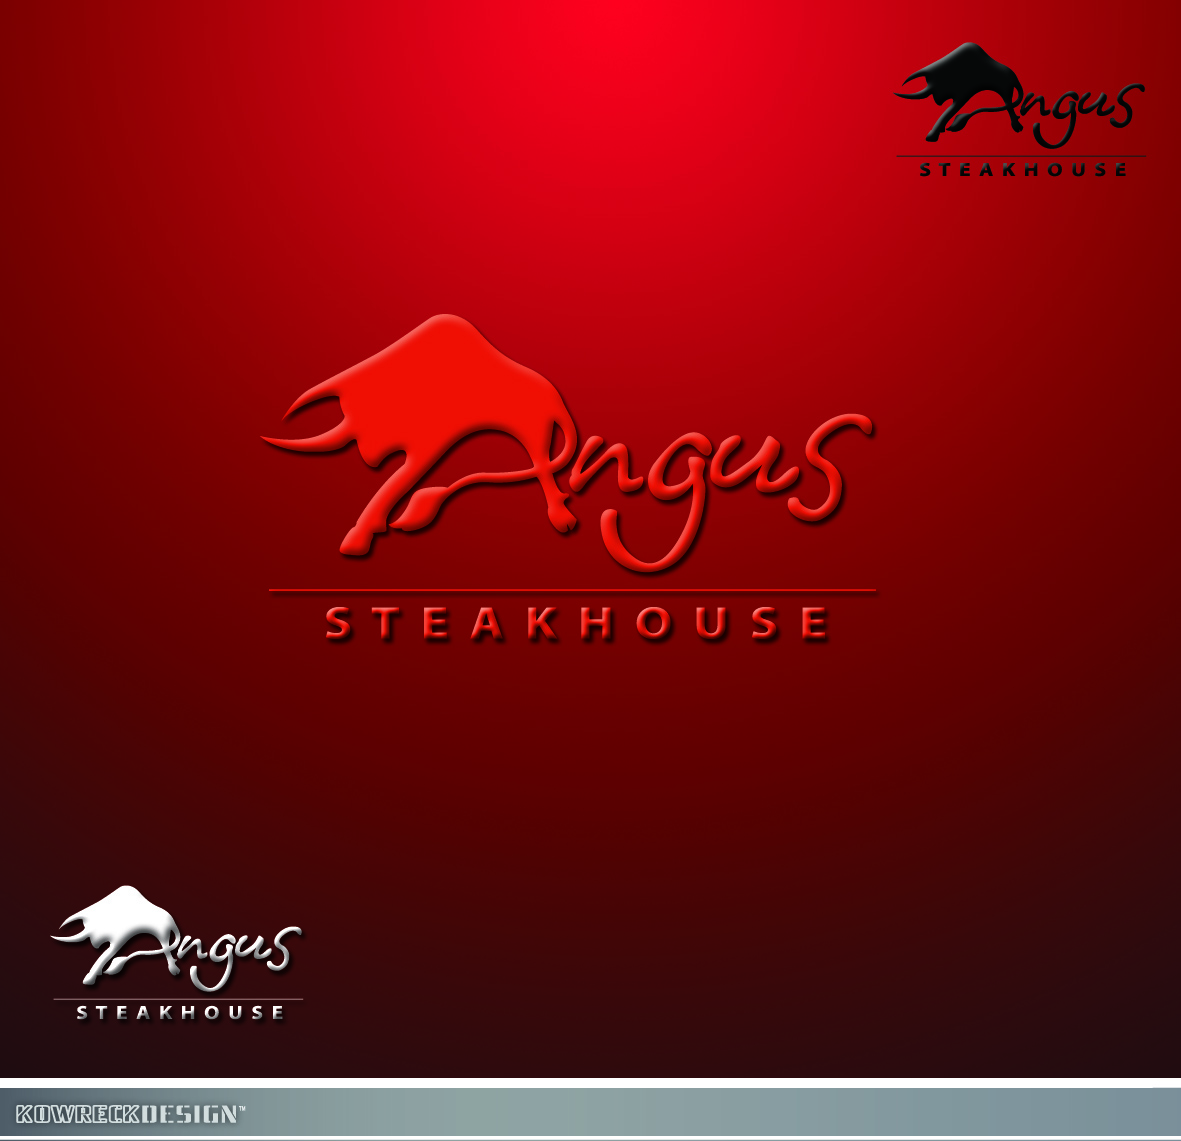 Logo Design by kowreck - Entry No. 98 in the Logo Design Contest Imaginative Custom Design for Angus Steakhouse.